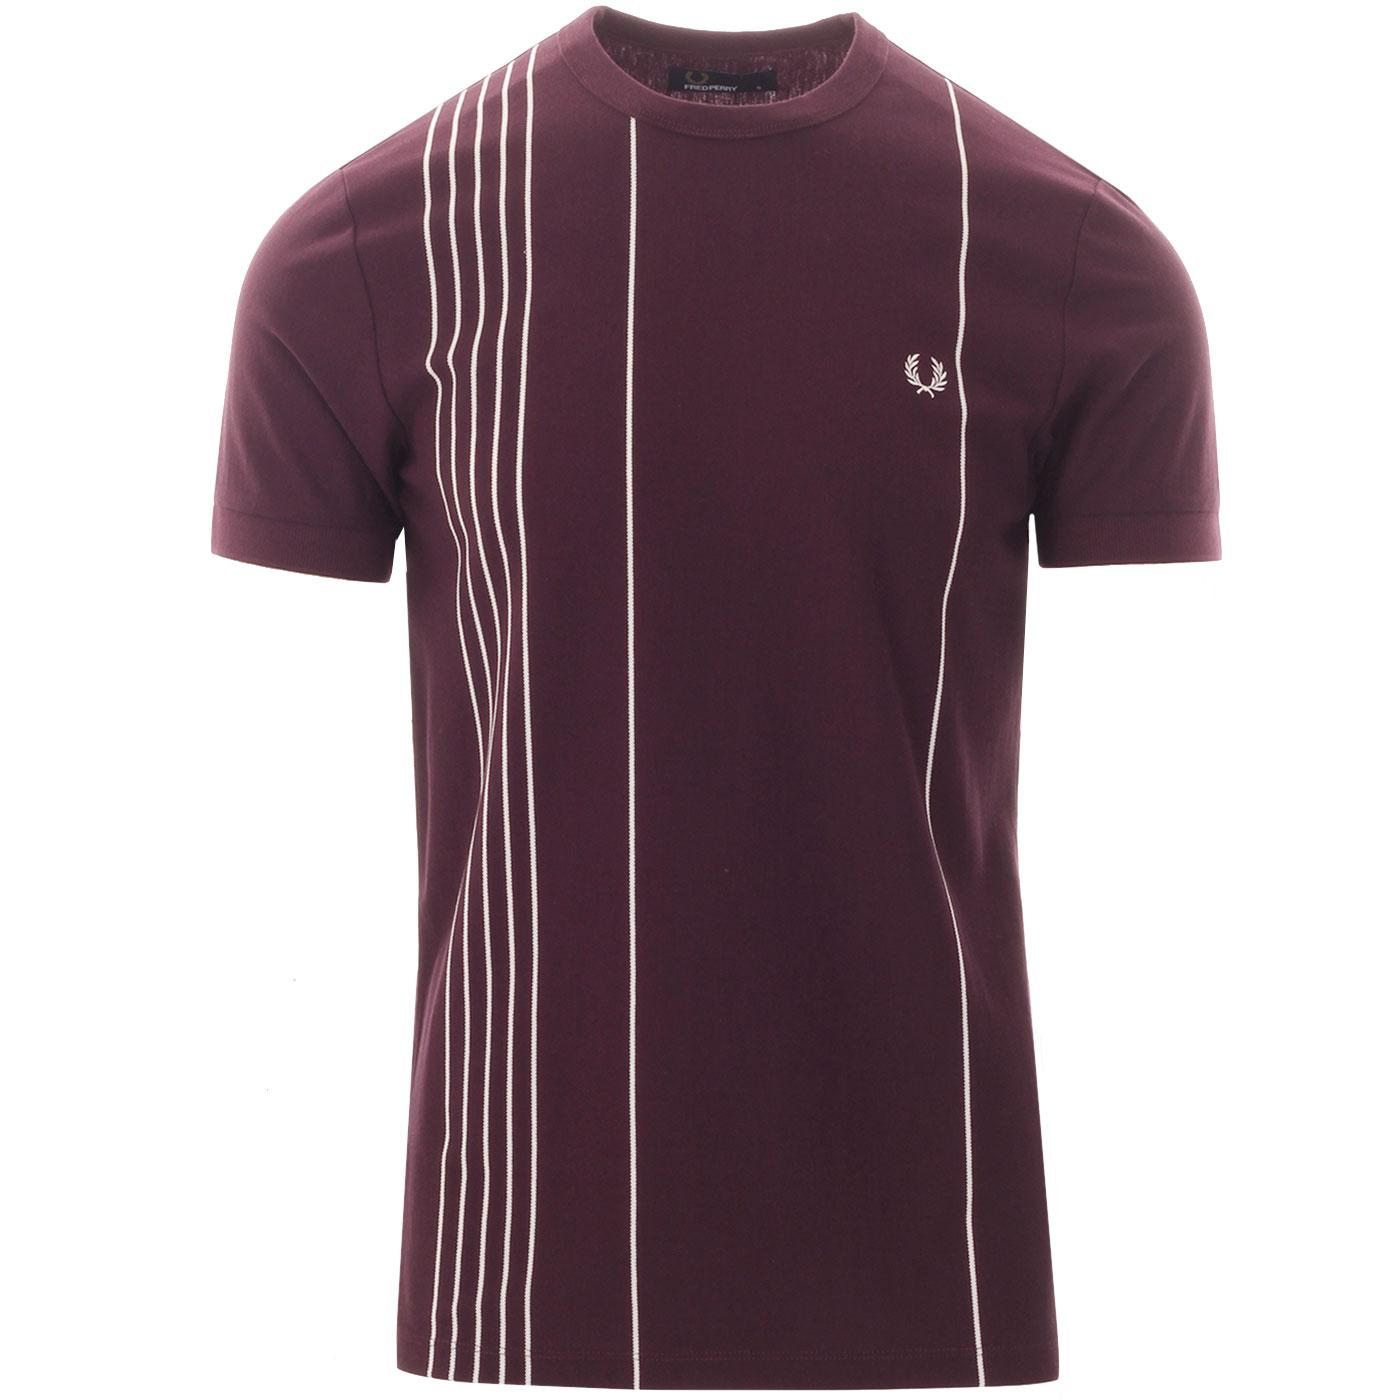 FRED PERRY Men's Vertical Stripe Pique T-Shirt